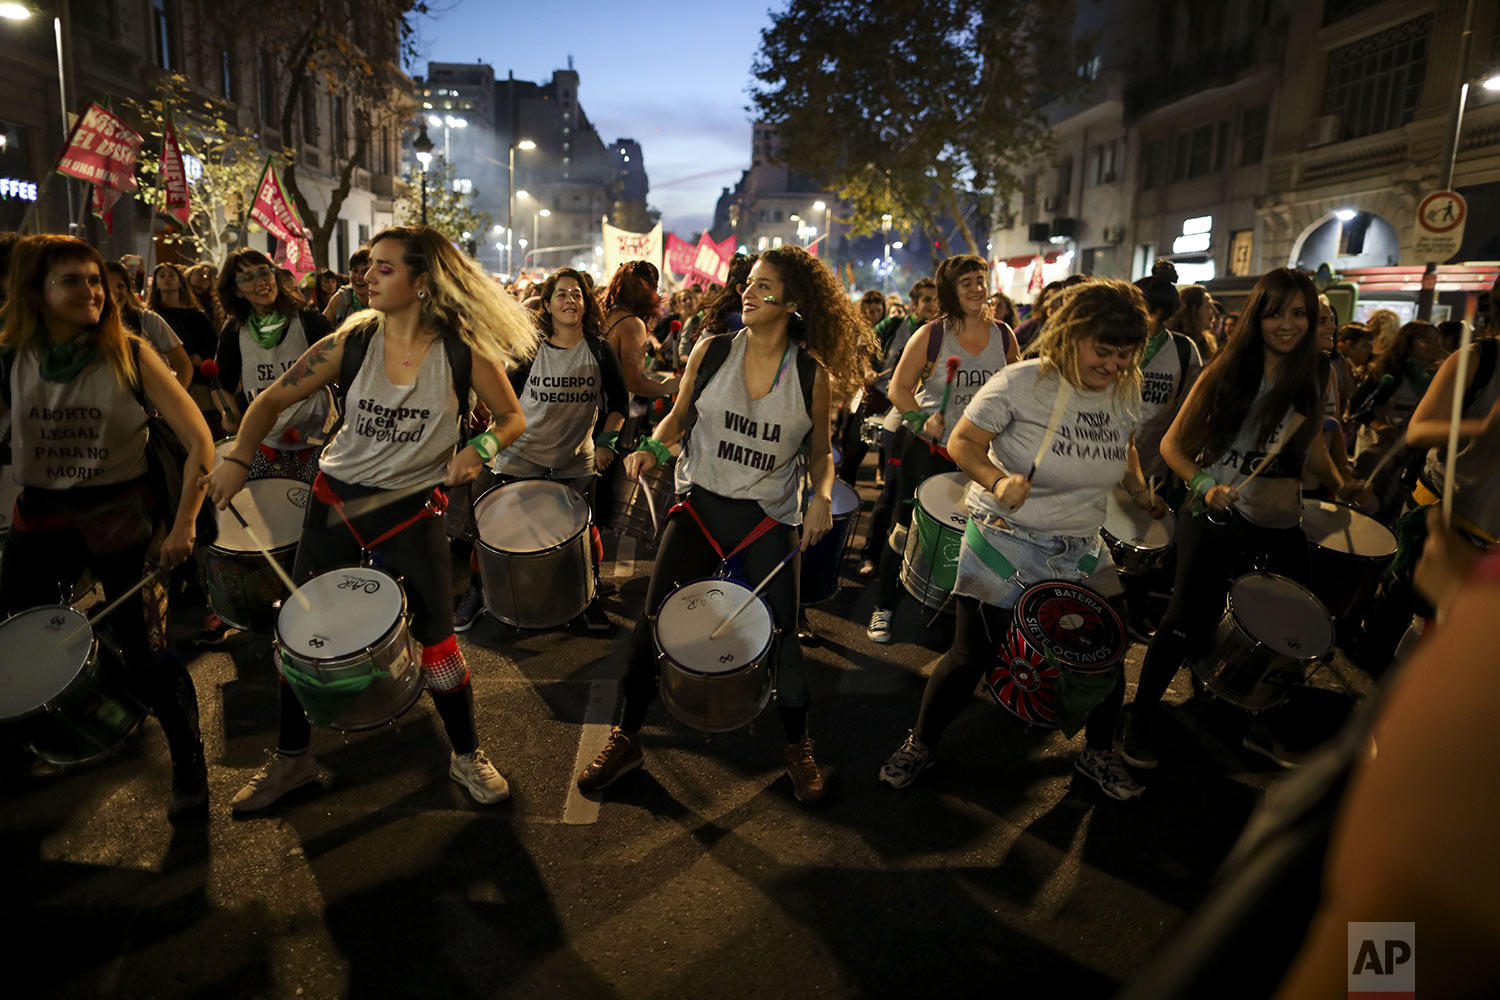 """Women play drums during a protest against gender violence in Buenos Aires, Argentina, Monday, June 3, 2019. The grassroots movement """"Ni una menos,"""" or Not One Less, is marking its fourth anniversary by remembering the hundreds of women who have been murdered since its founding, and demanding laws to curb sexist violence that continues to permeate Argentine society. (AP Photo/Natacha Pisarenko)"""